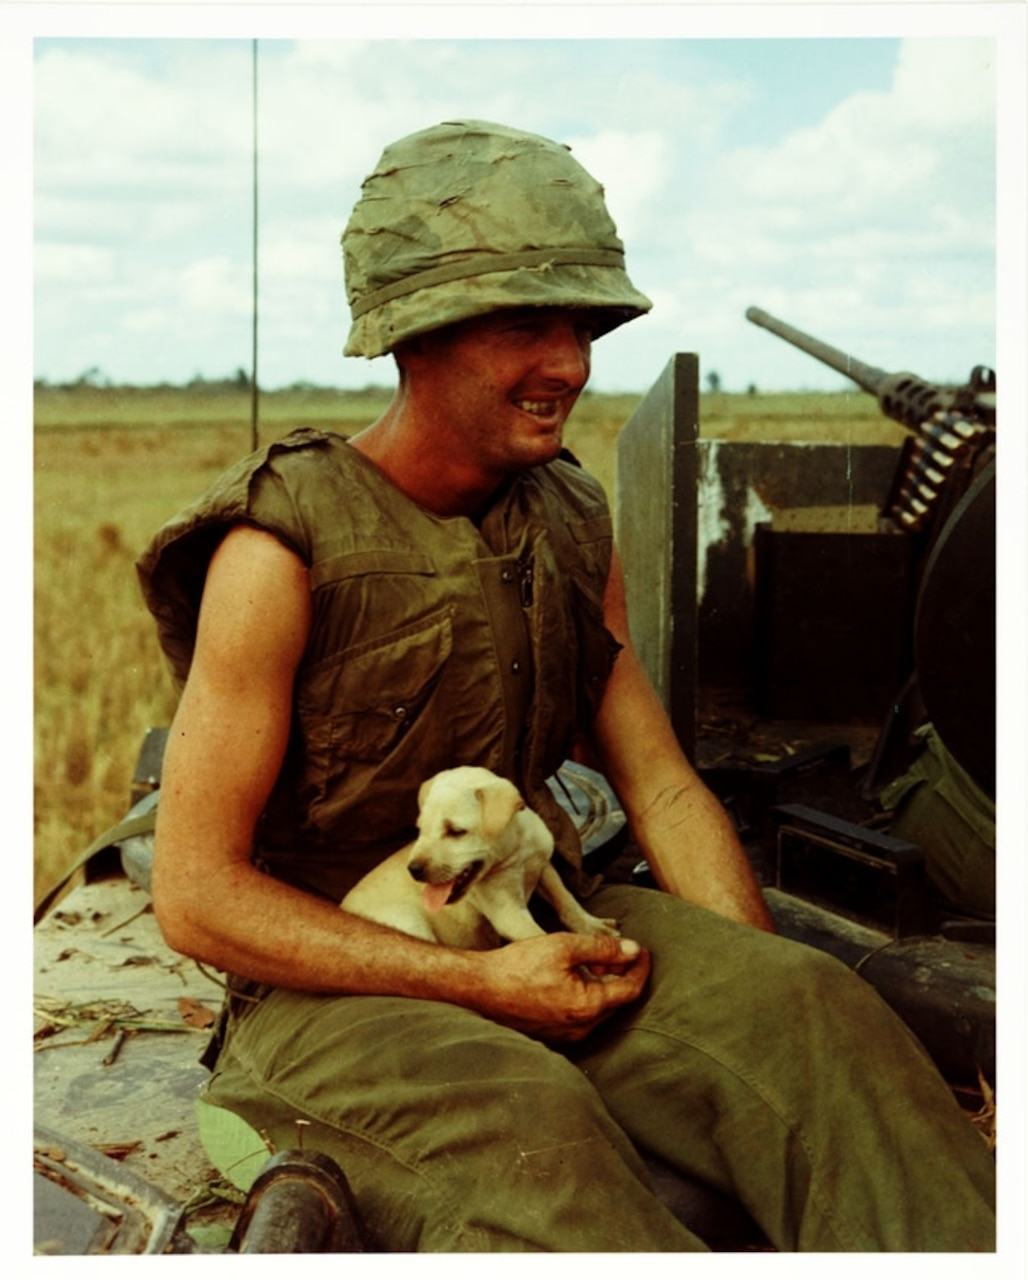 A soldier in South Vietnam sits smiling with puppy in his lap.